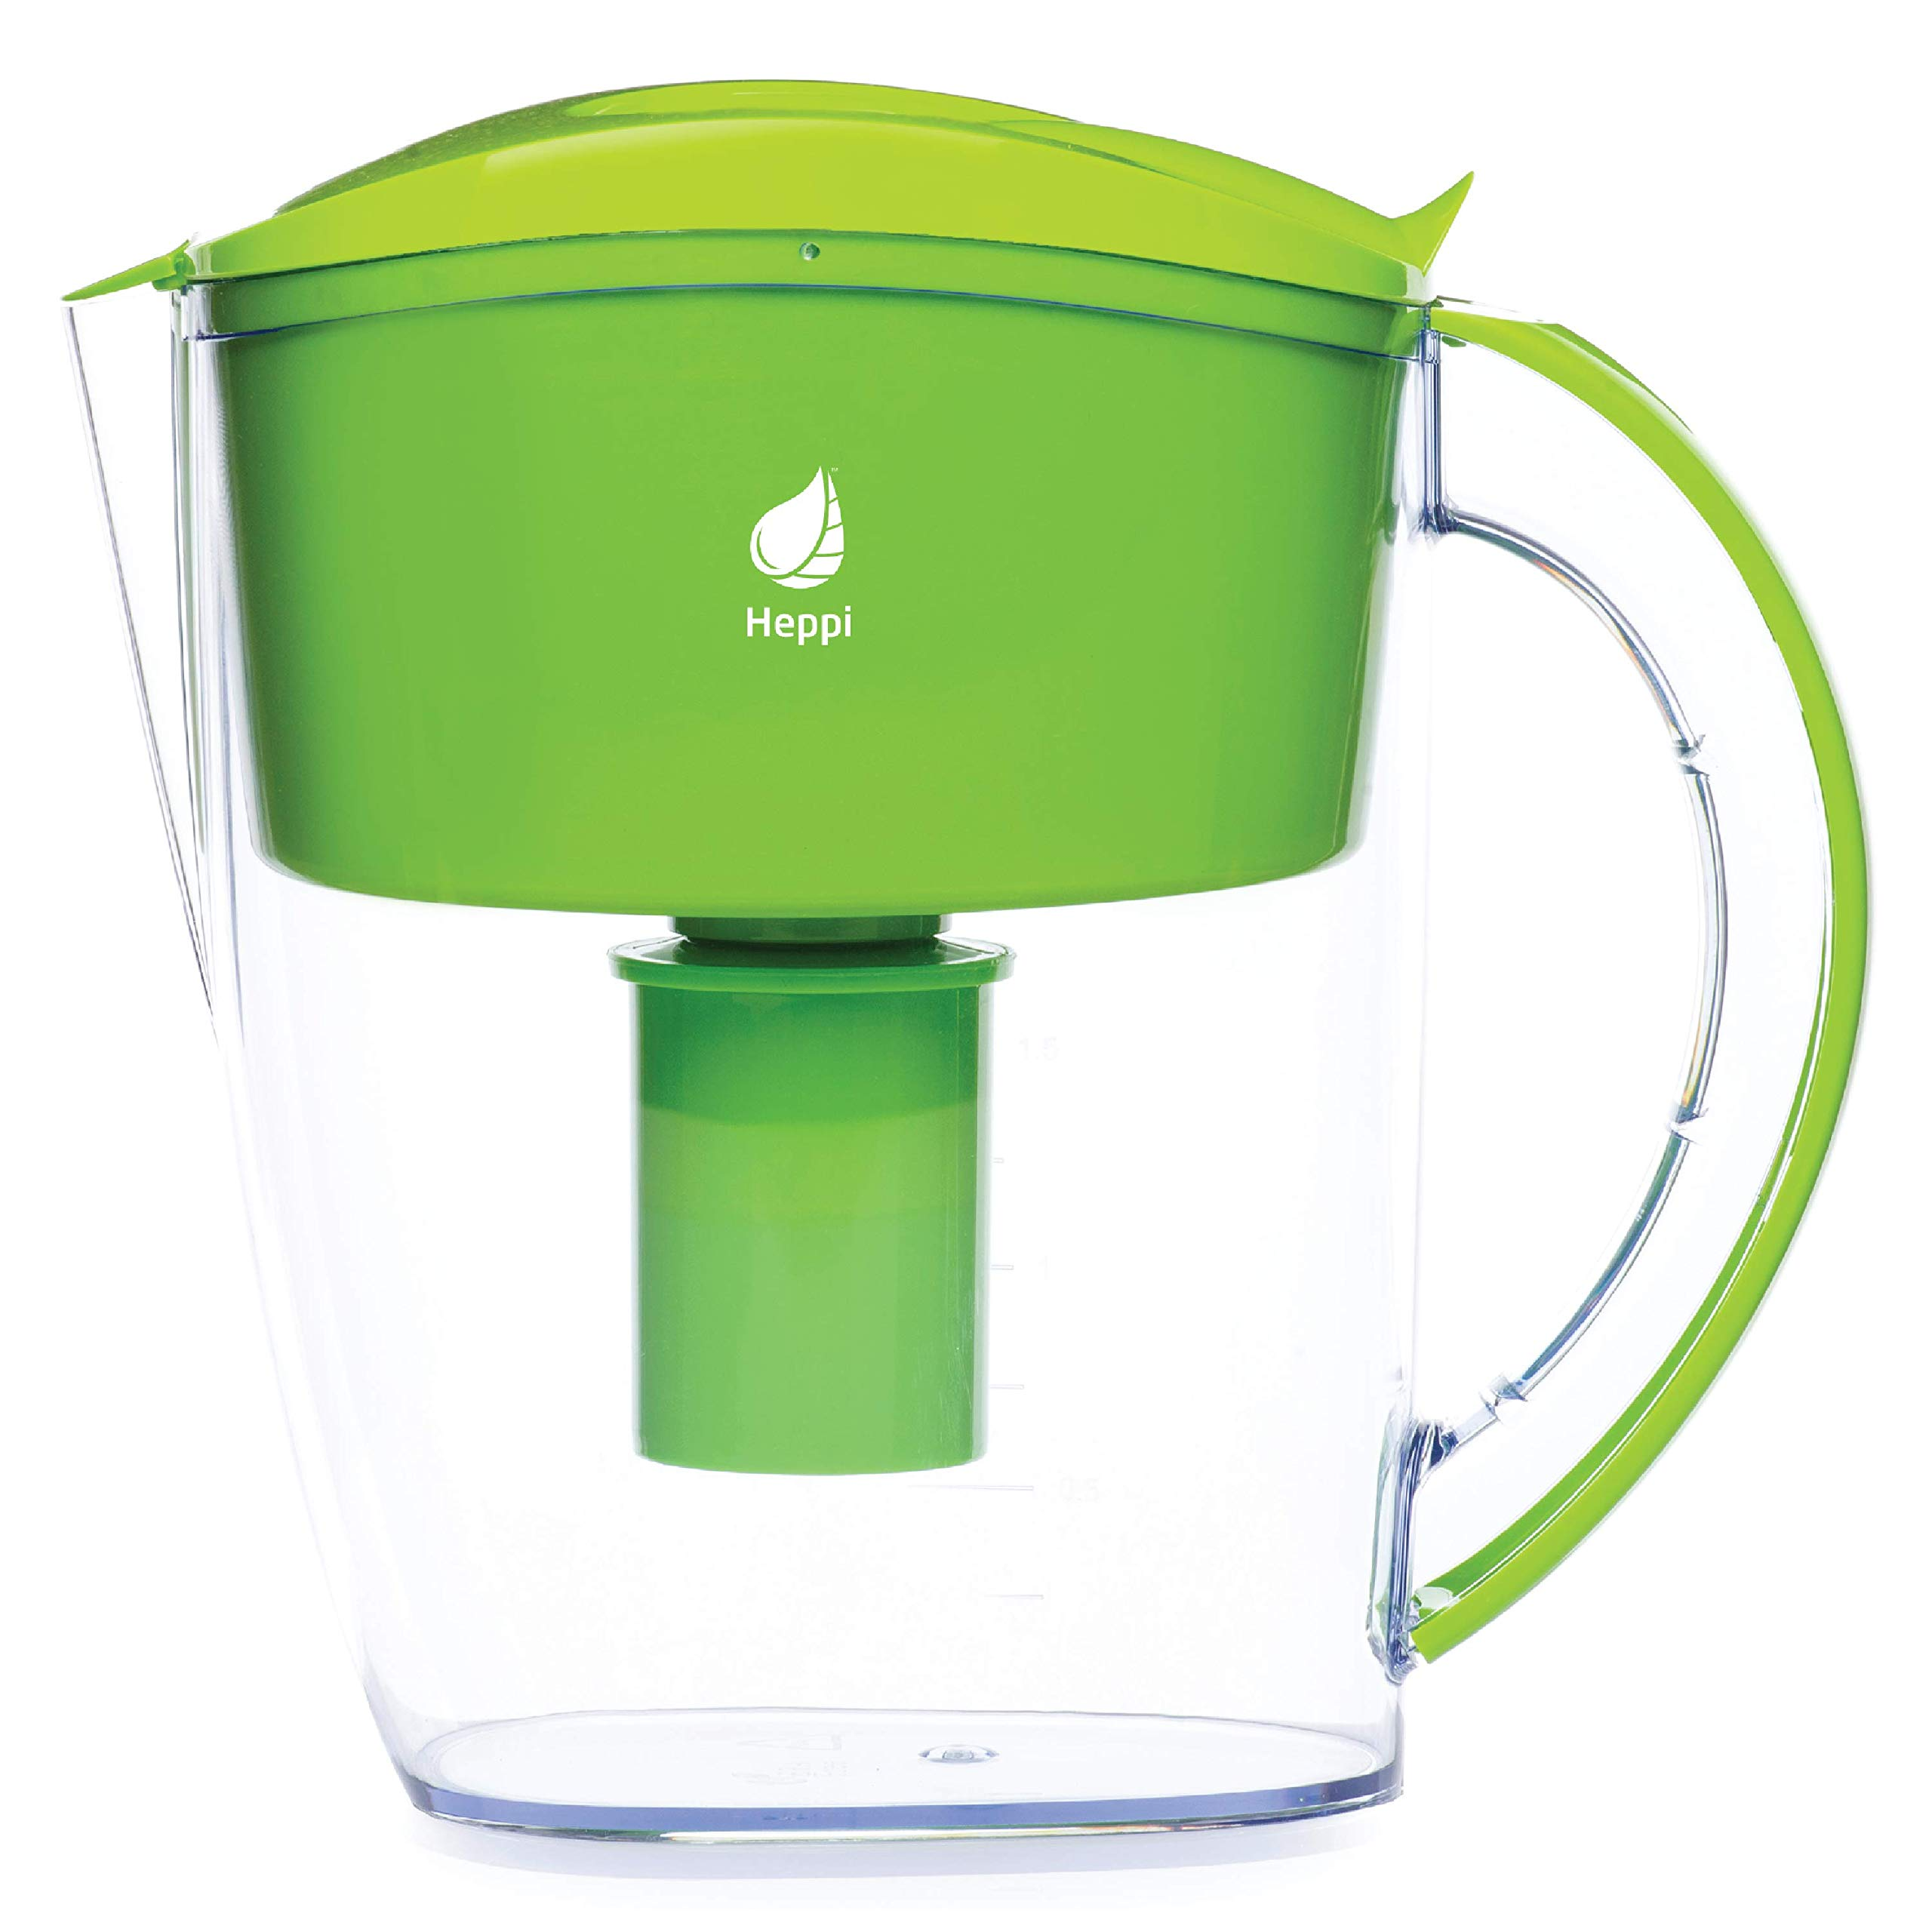 Heppi 3L Alkaline High pH Water Pitcher with 1 Filter (Green)